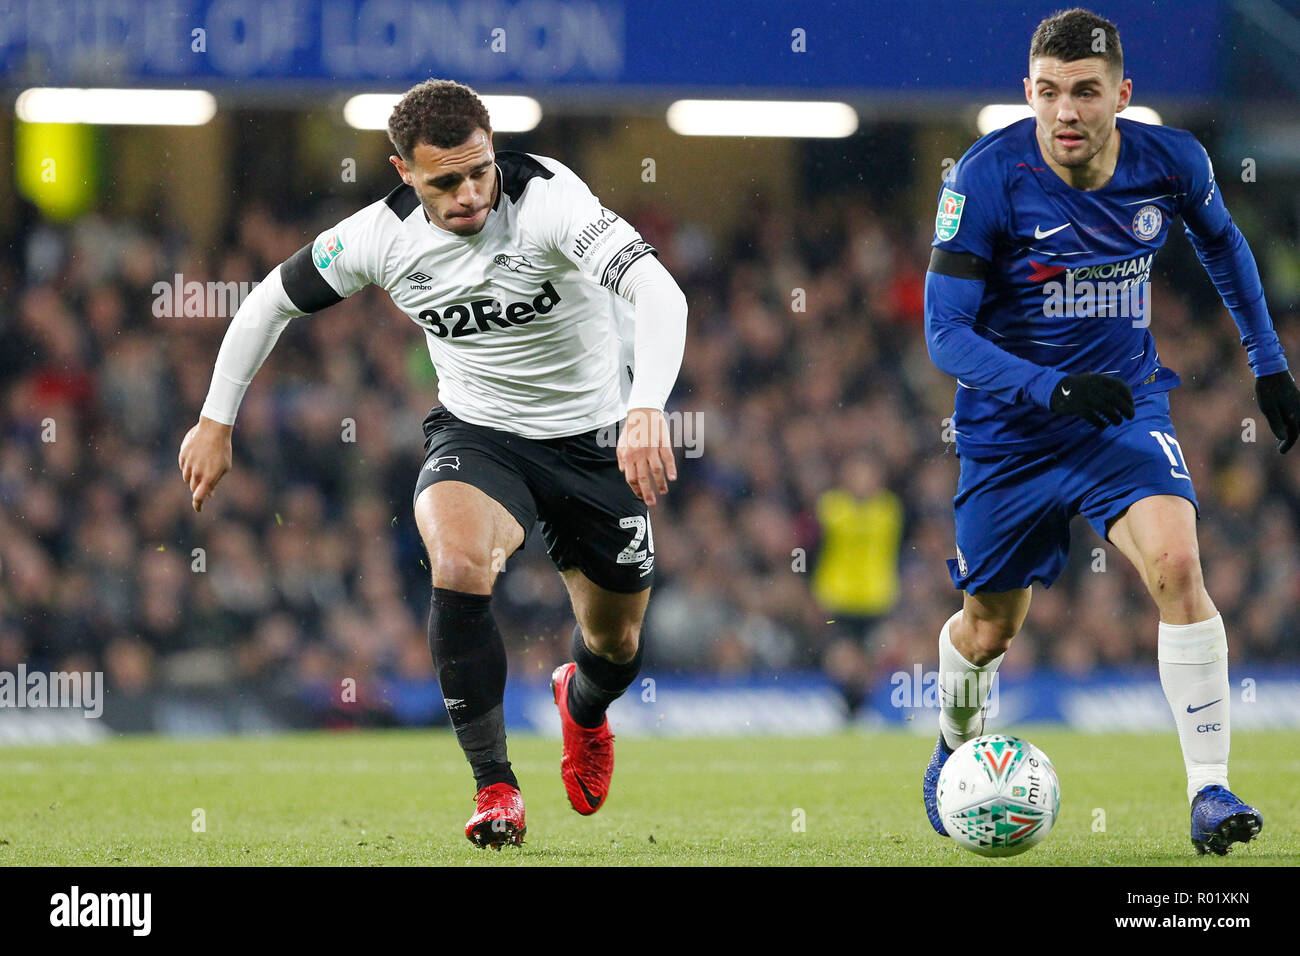 Mason Bennett of Derby County gives chase during the EFL Carabao Cup Round of 16 match between Chelsea and Derby County at Stamford Bridge, London, England on 31 October 2018. Photo by Carlton Myrie.  Editorial use only, license required for commercial use. No use in betting, games or a single club/league/player publications. - Stock Image